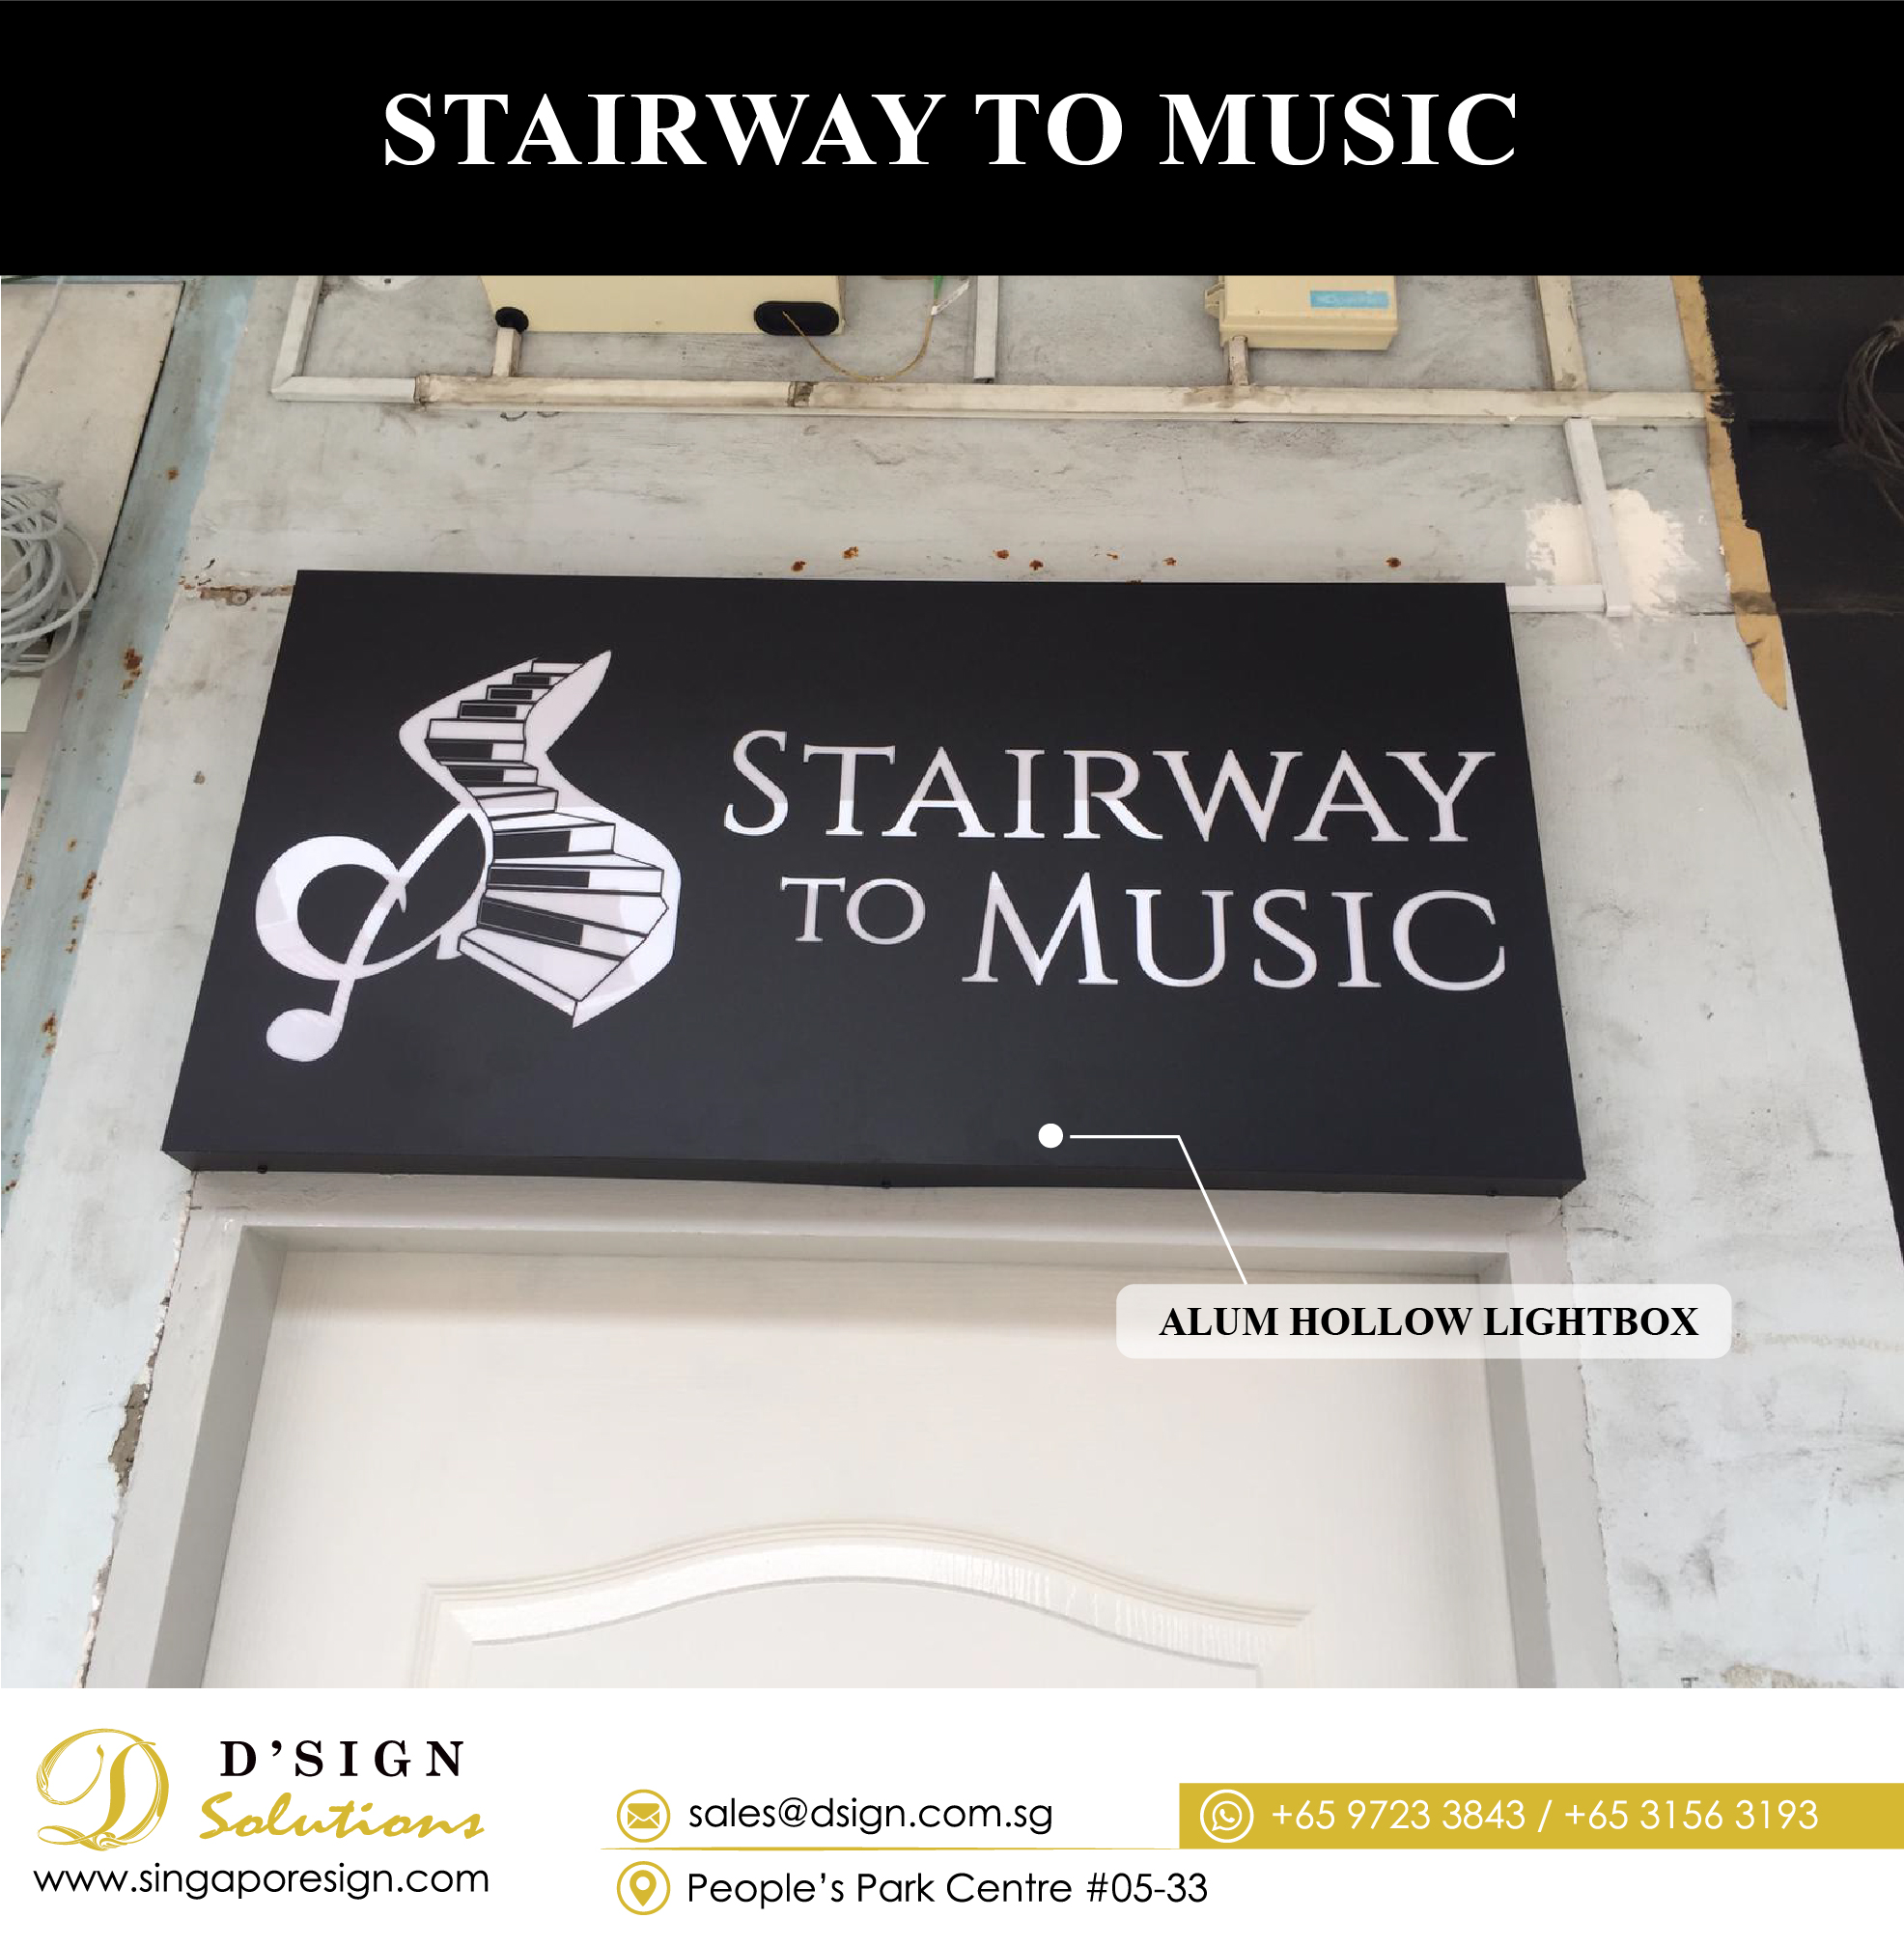 STAIRWAY TO MUSIC